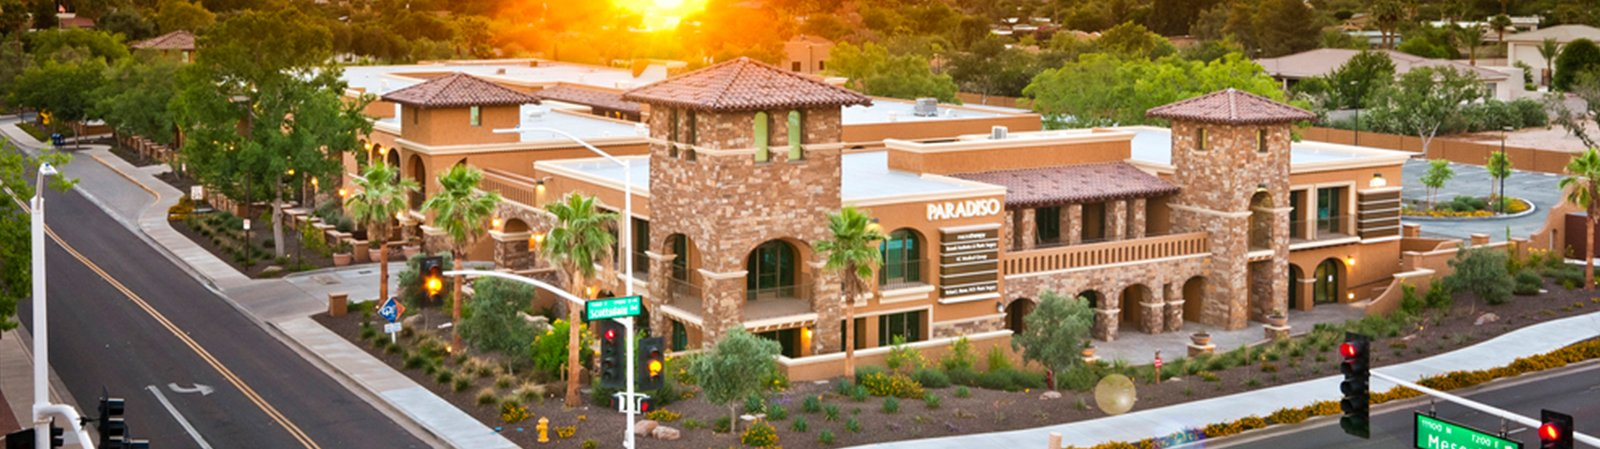 scottsdale location page banner